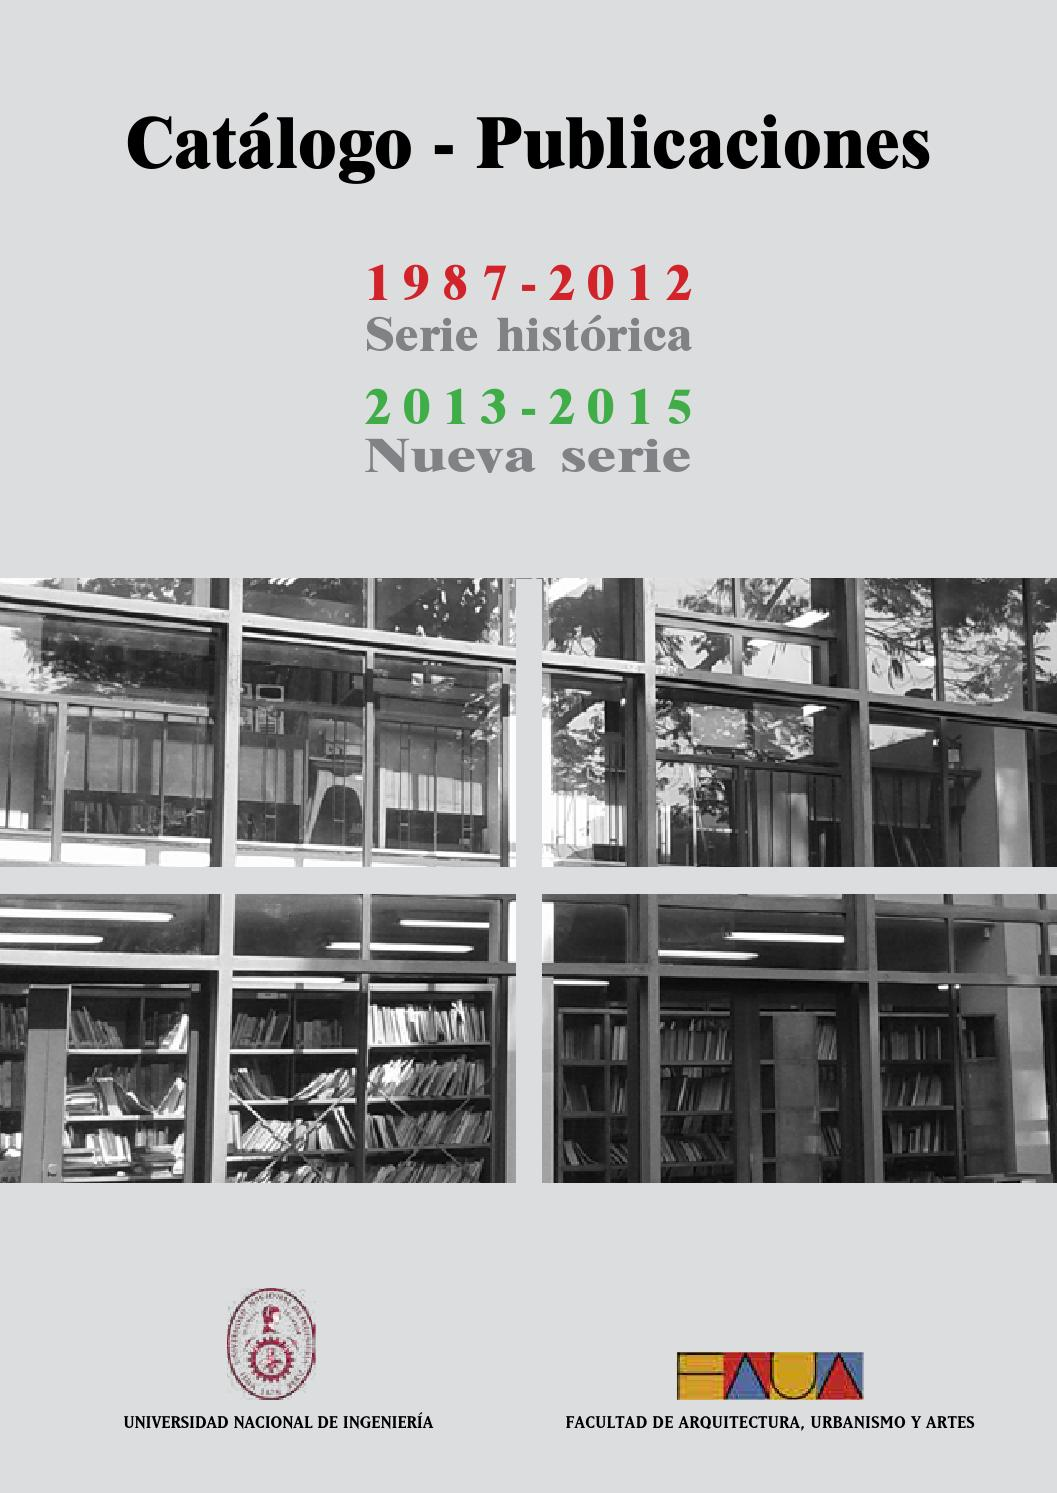 Catalogo publicaciones faua uni by edifaua issuu for Facultad de arquitectura direccion